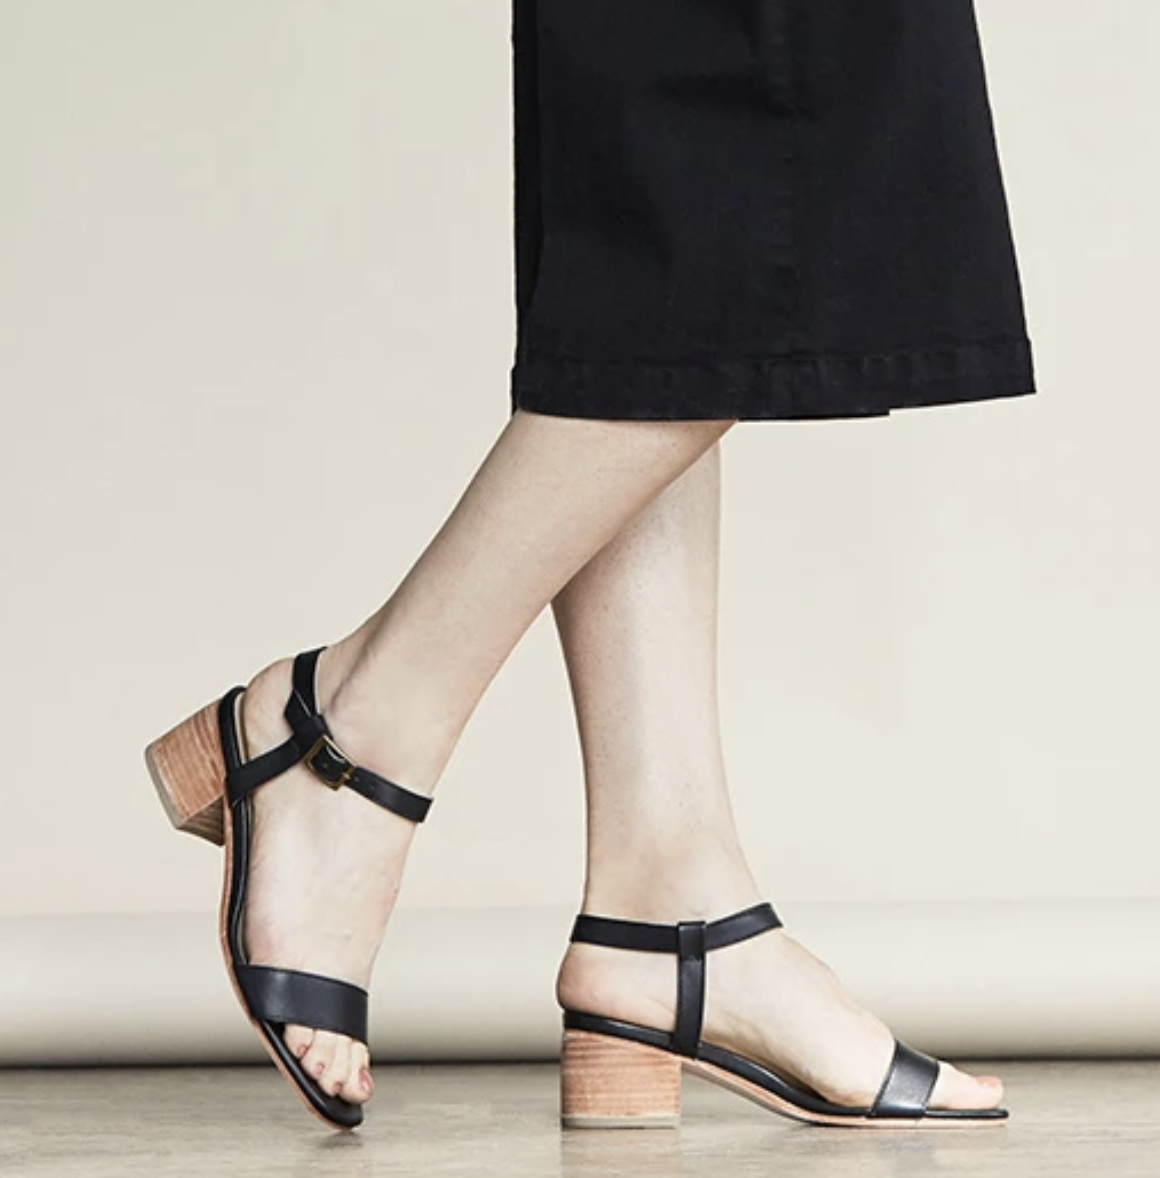 Model in black heeled strappy sandals with light wood inspired heel